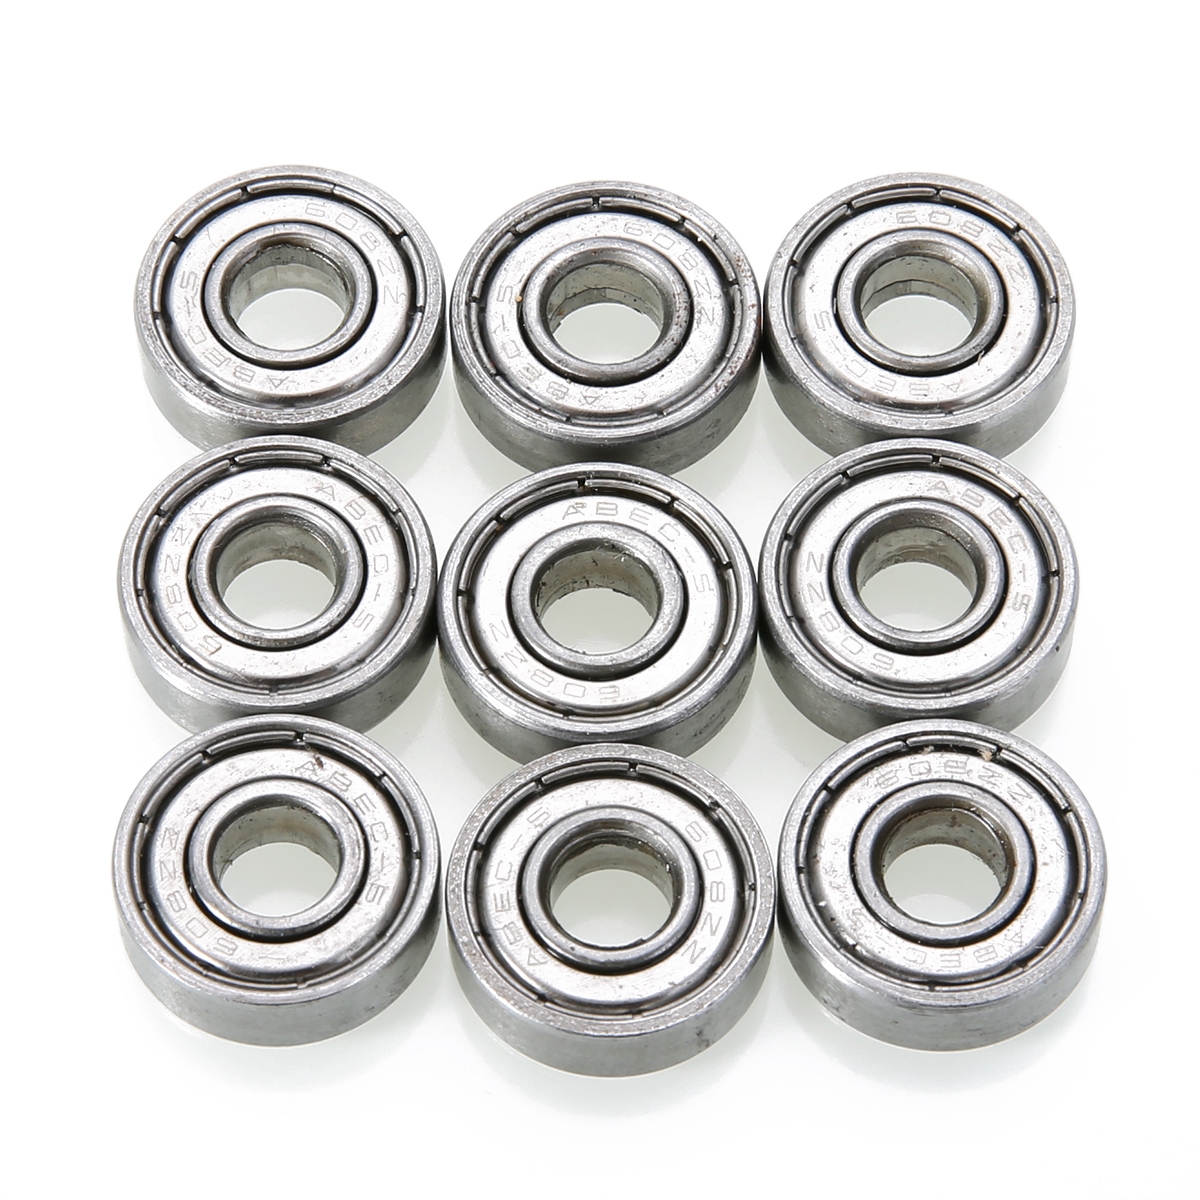 10pcs 608zz Deep Groove Bearing Steel Ball Bearings With Grease For Skateboard Roller Blade Scooter Inline Skating Mayitr